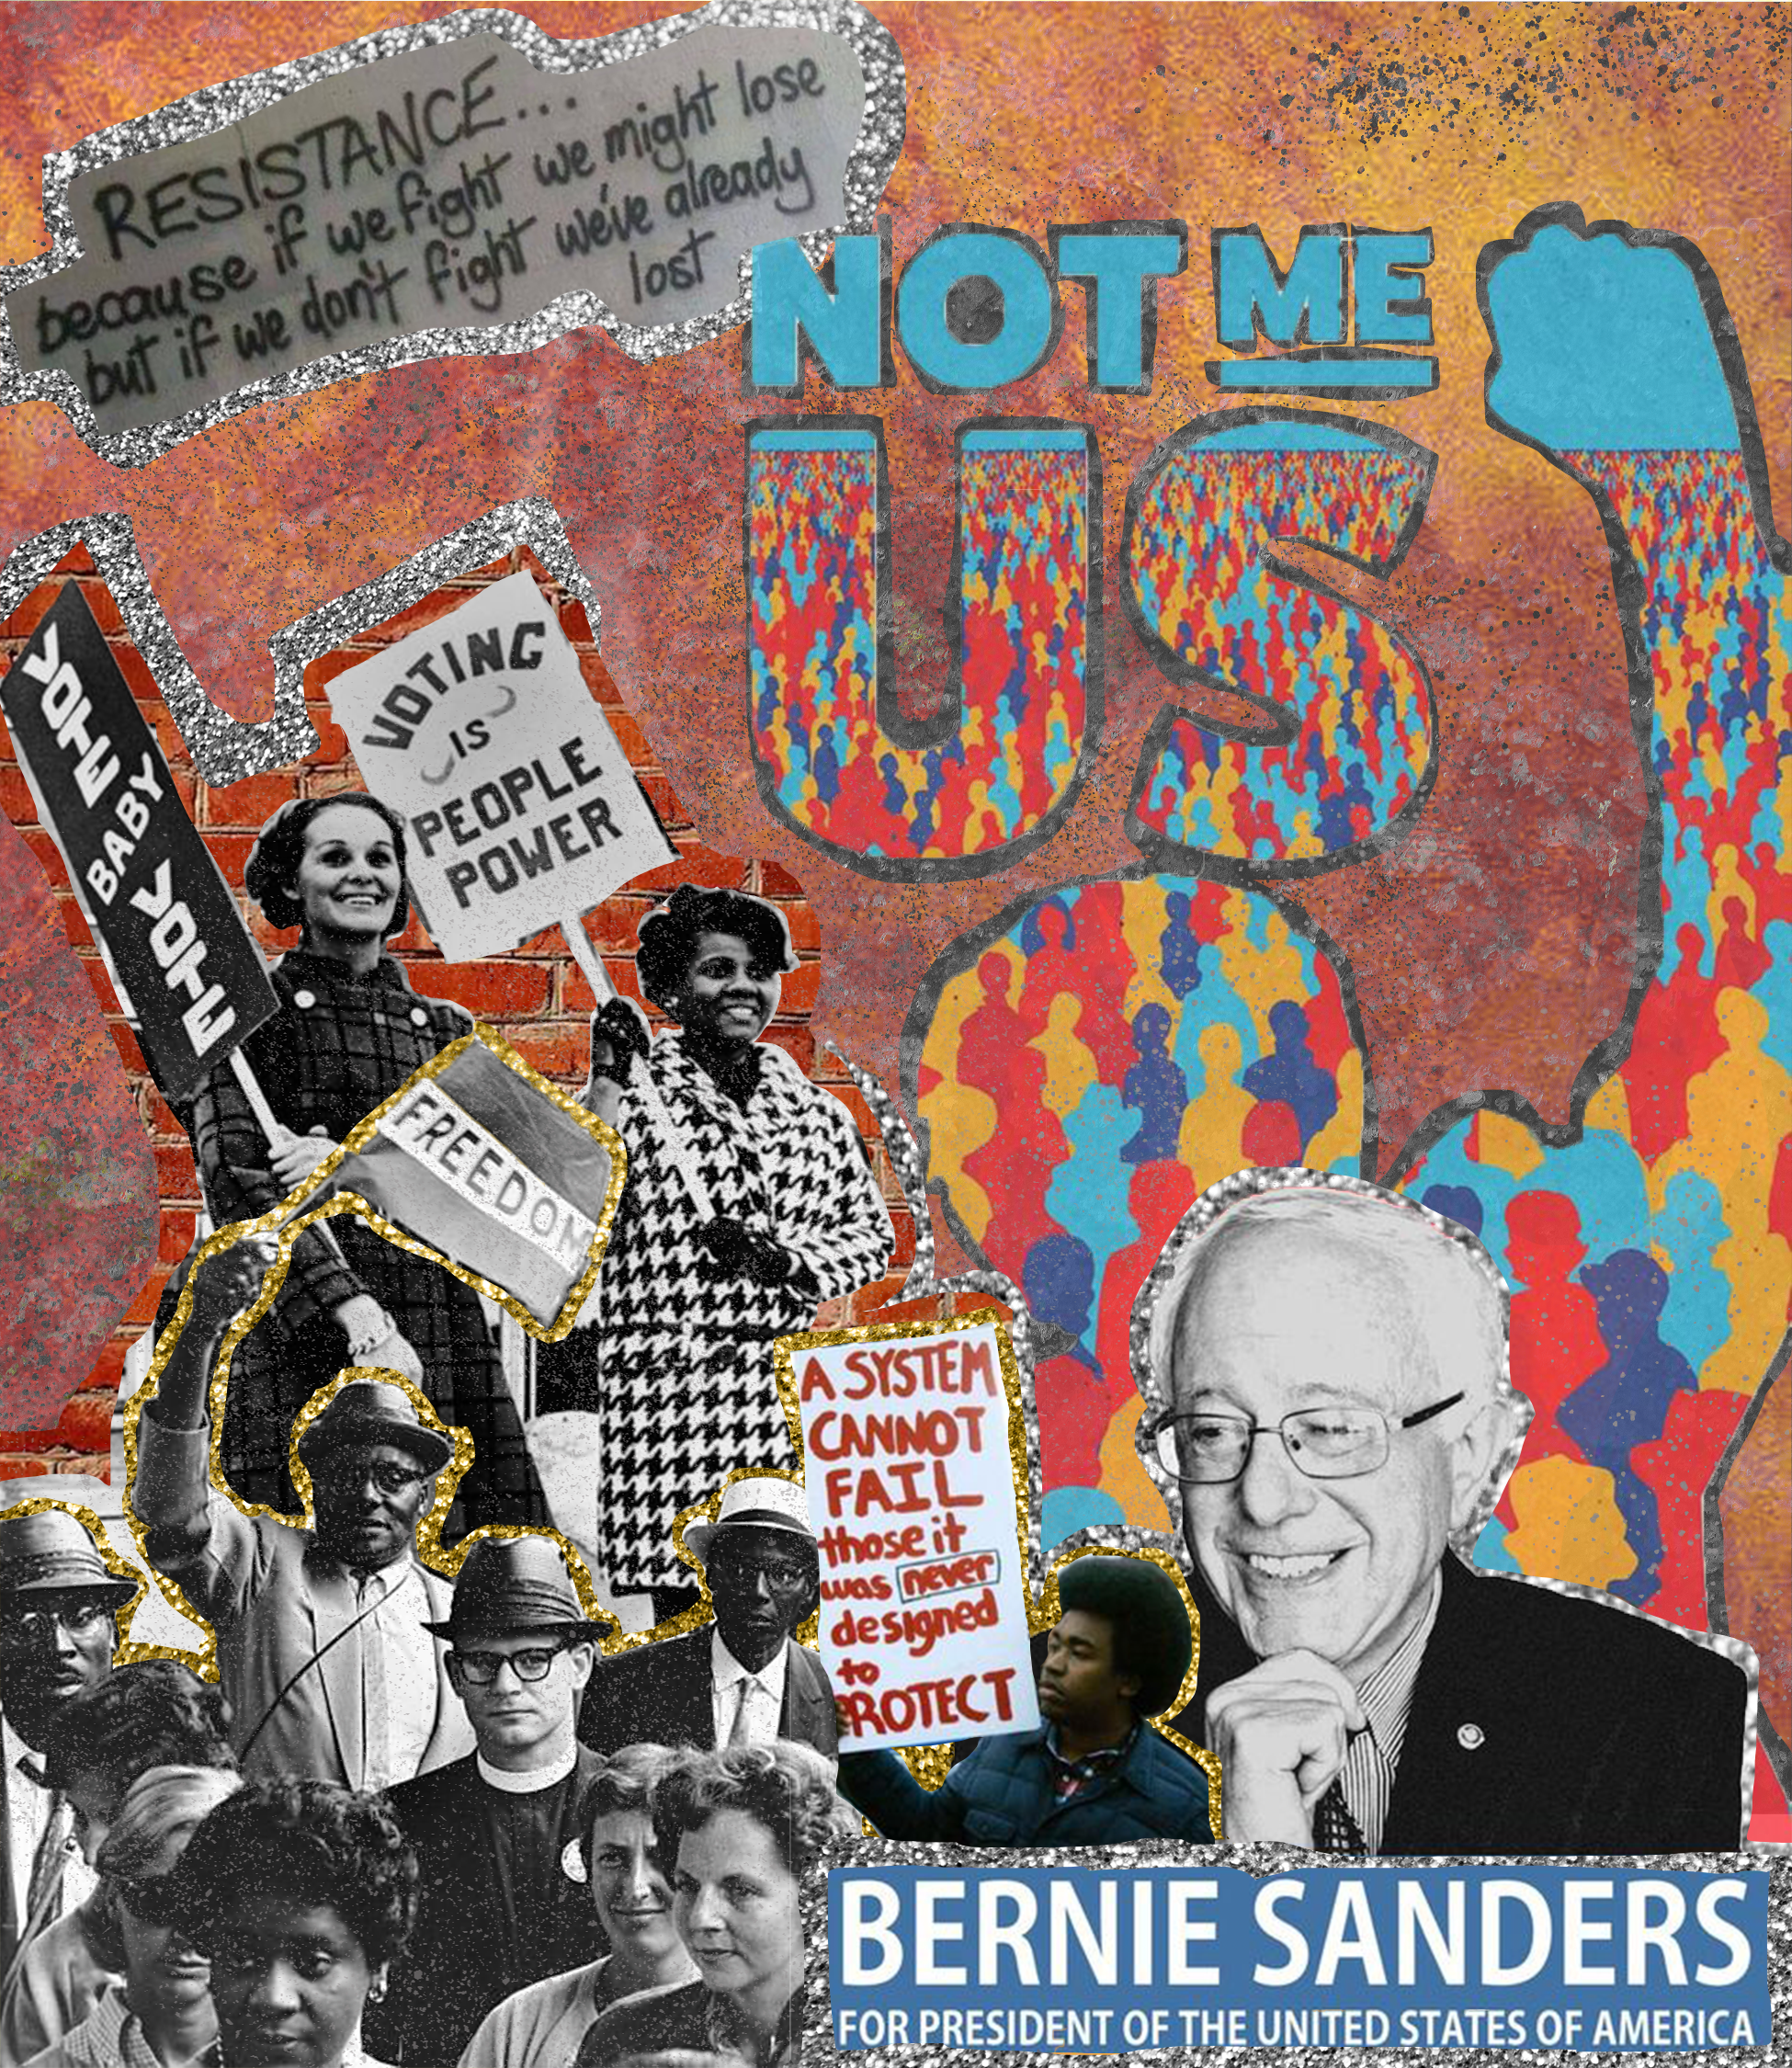 Pin By Bex On Collages In 2020 Bernie Sanders For President United States Of America Bernie Sanders